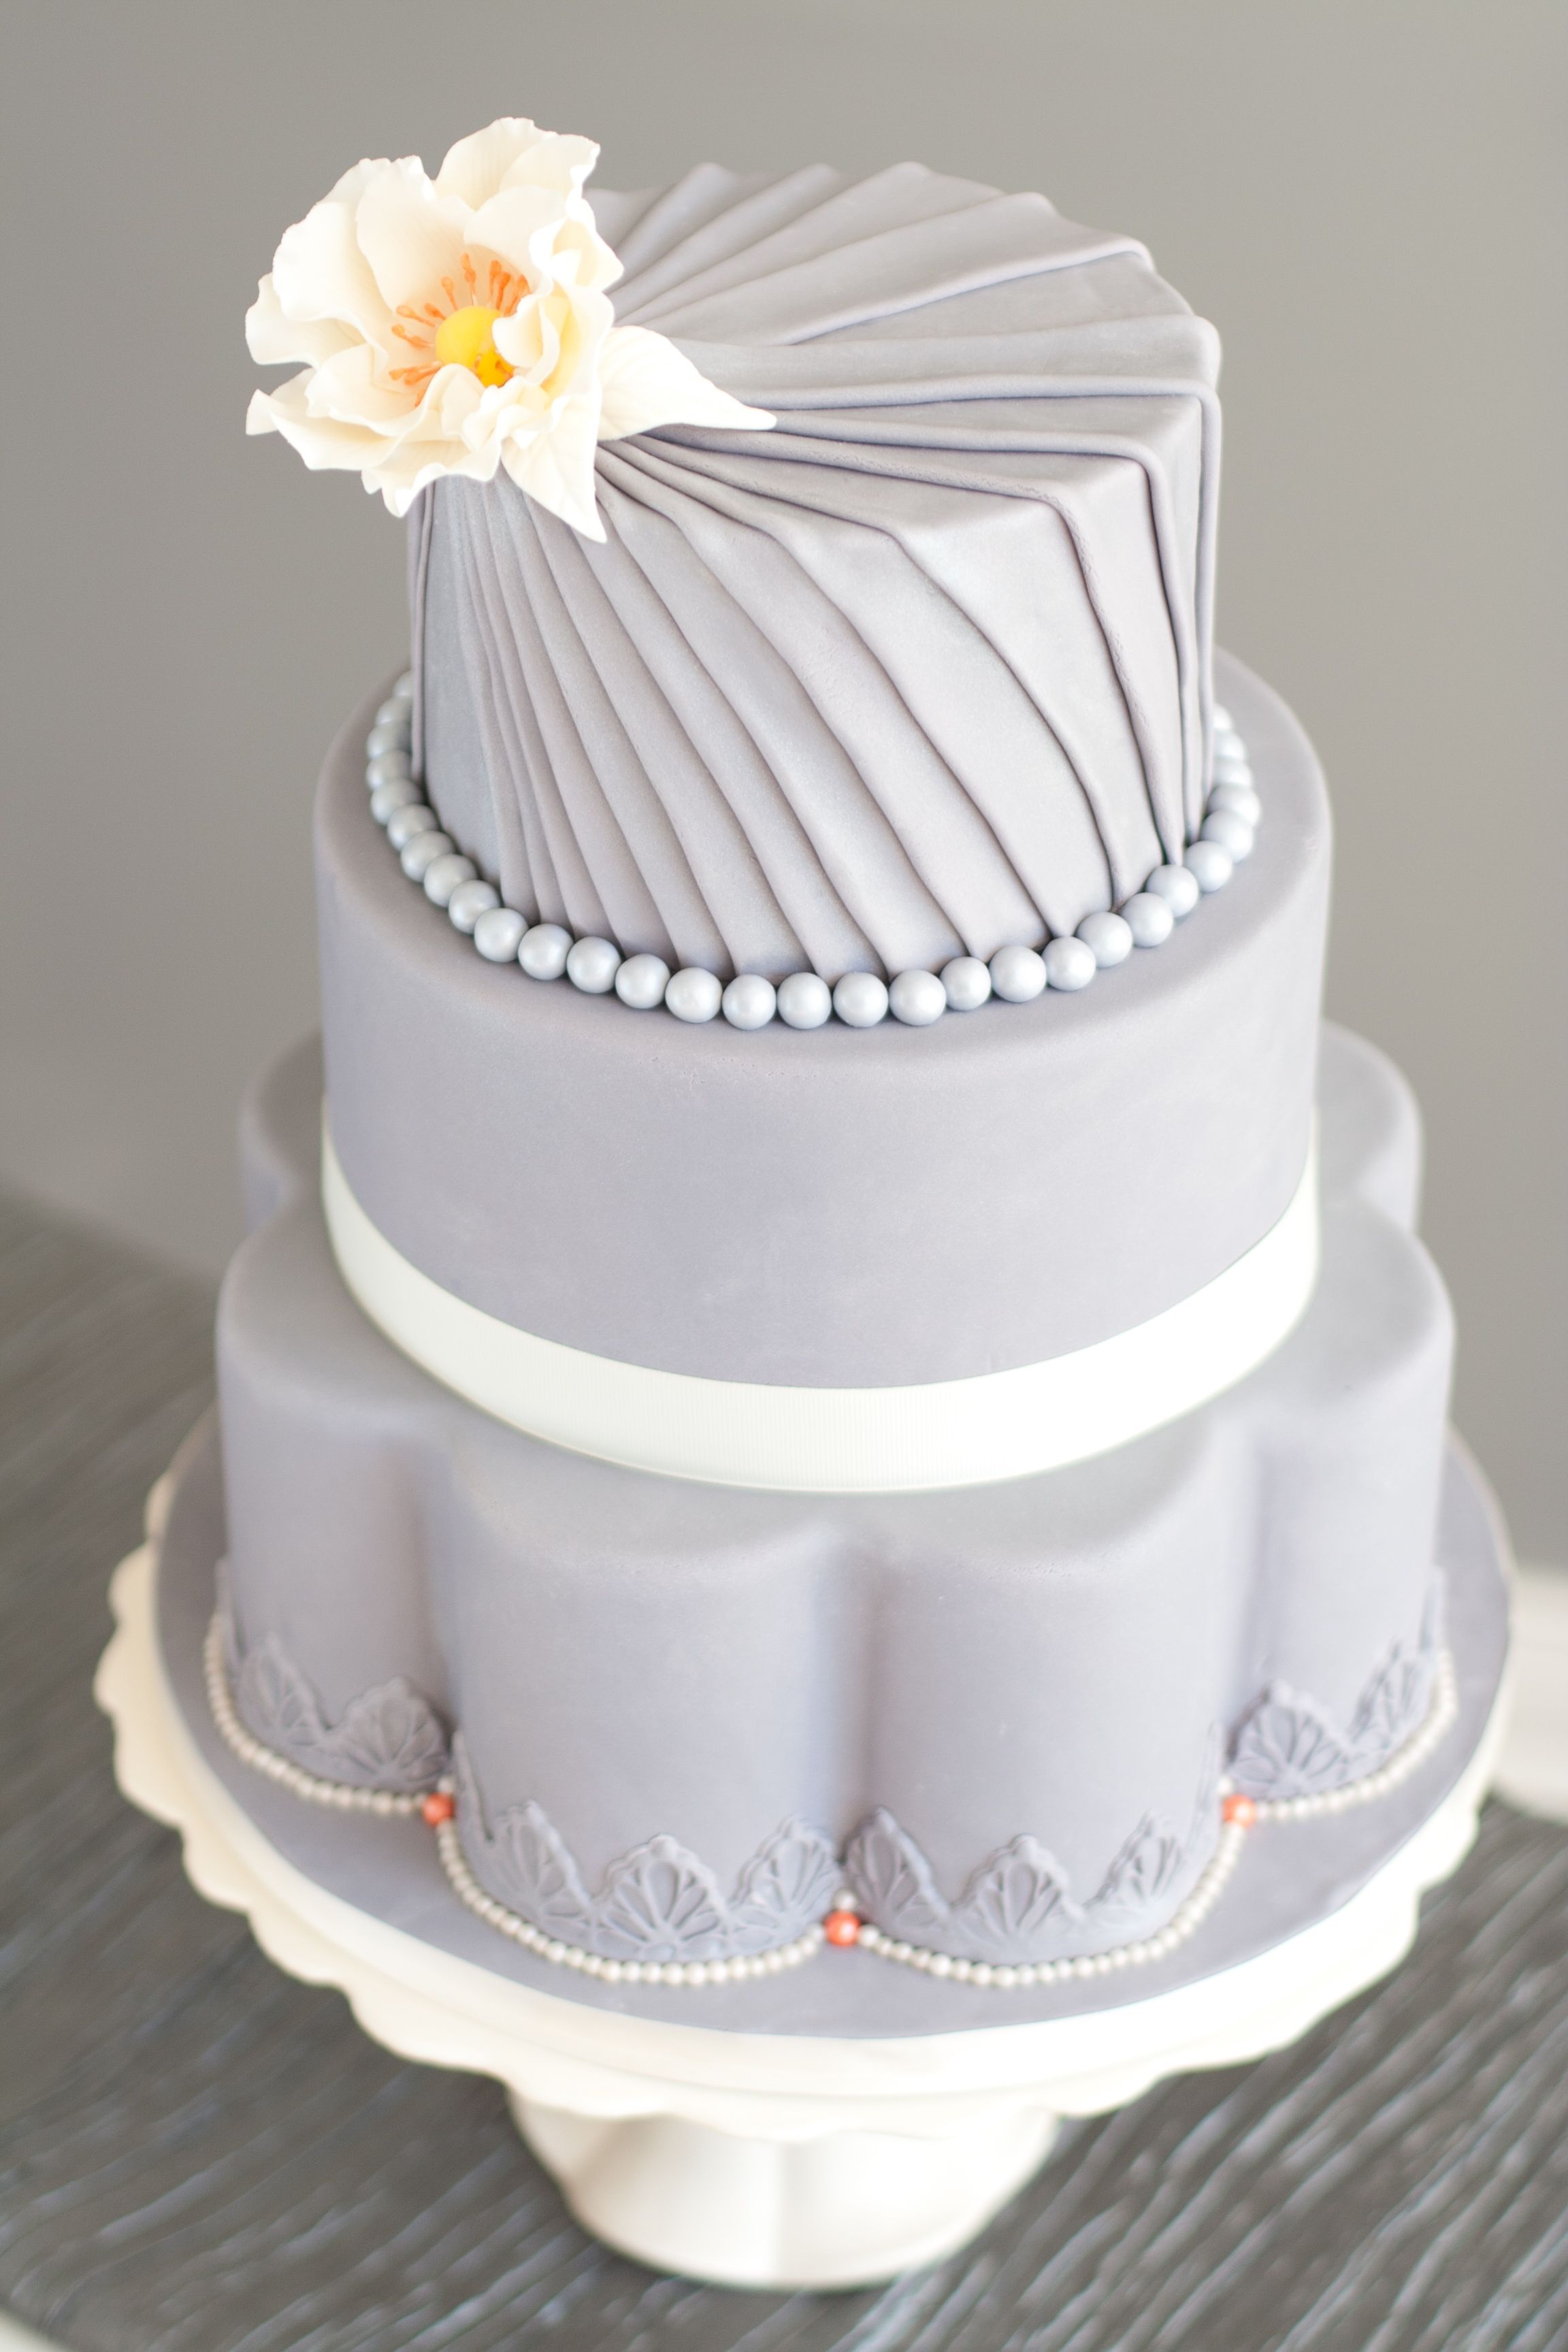 Pleated wedding cake - a hot trend for 2014. ᘡղbᘡ | repinned by ...